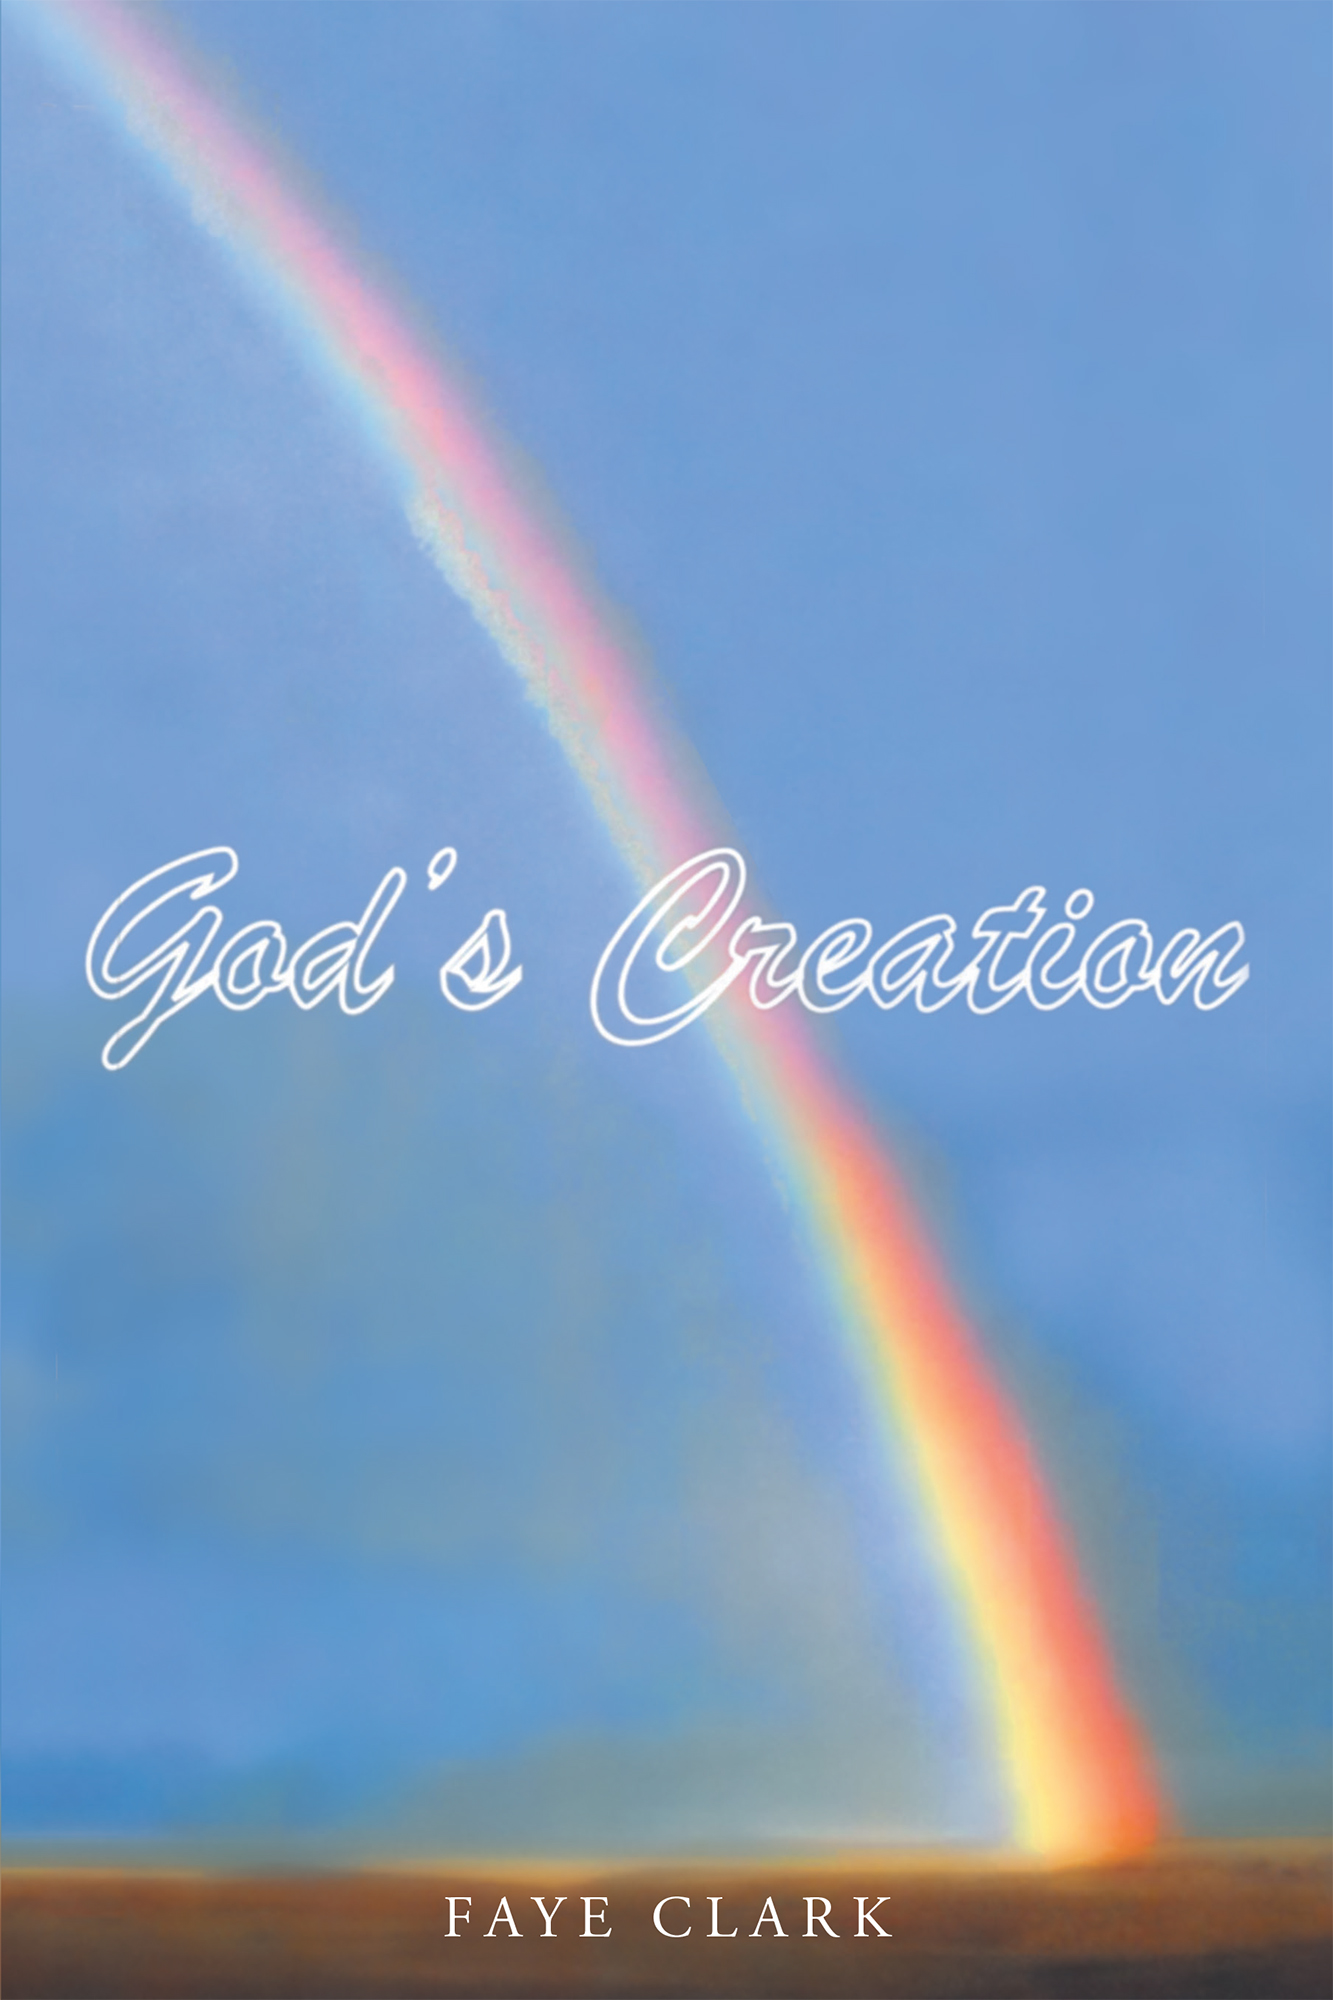 relationship between god and creation Genesis 1-11 and work  in describing god's creation of humanity in  adam further breaks the relationship between himself and eve by blaming her for his .